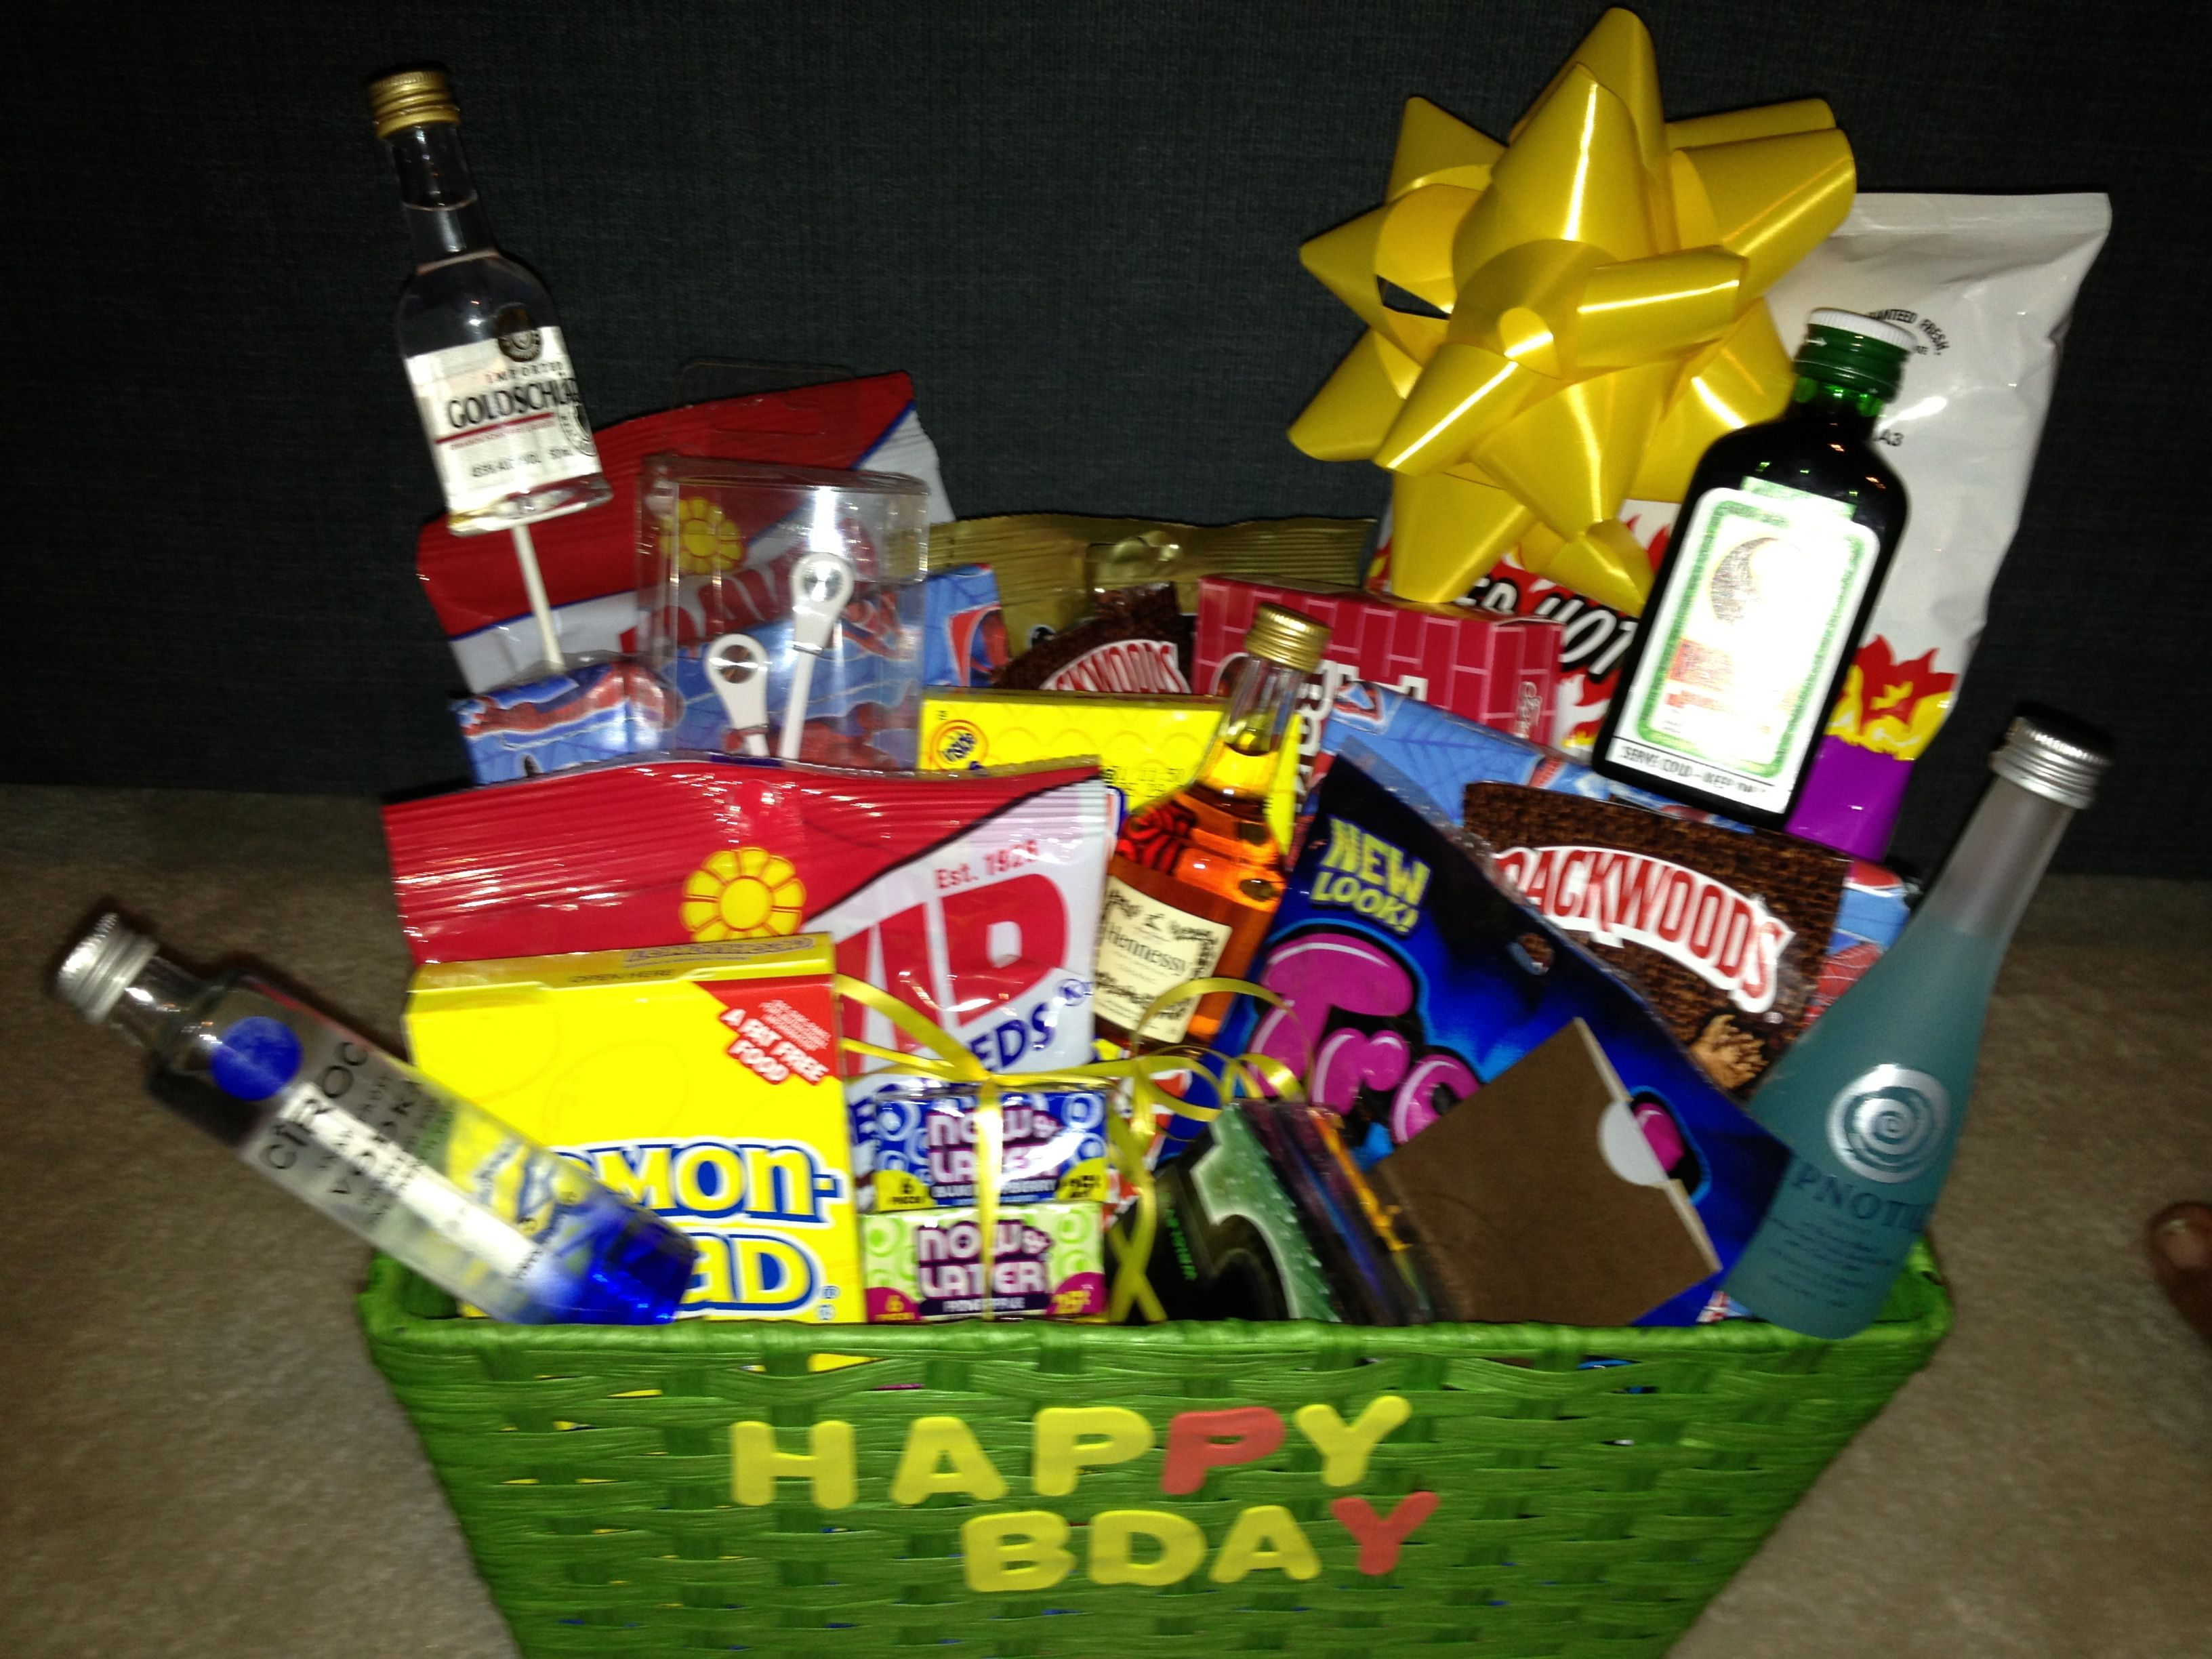 Boyfriend Birthday Gift Basket Gift Ideas Boyfriend